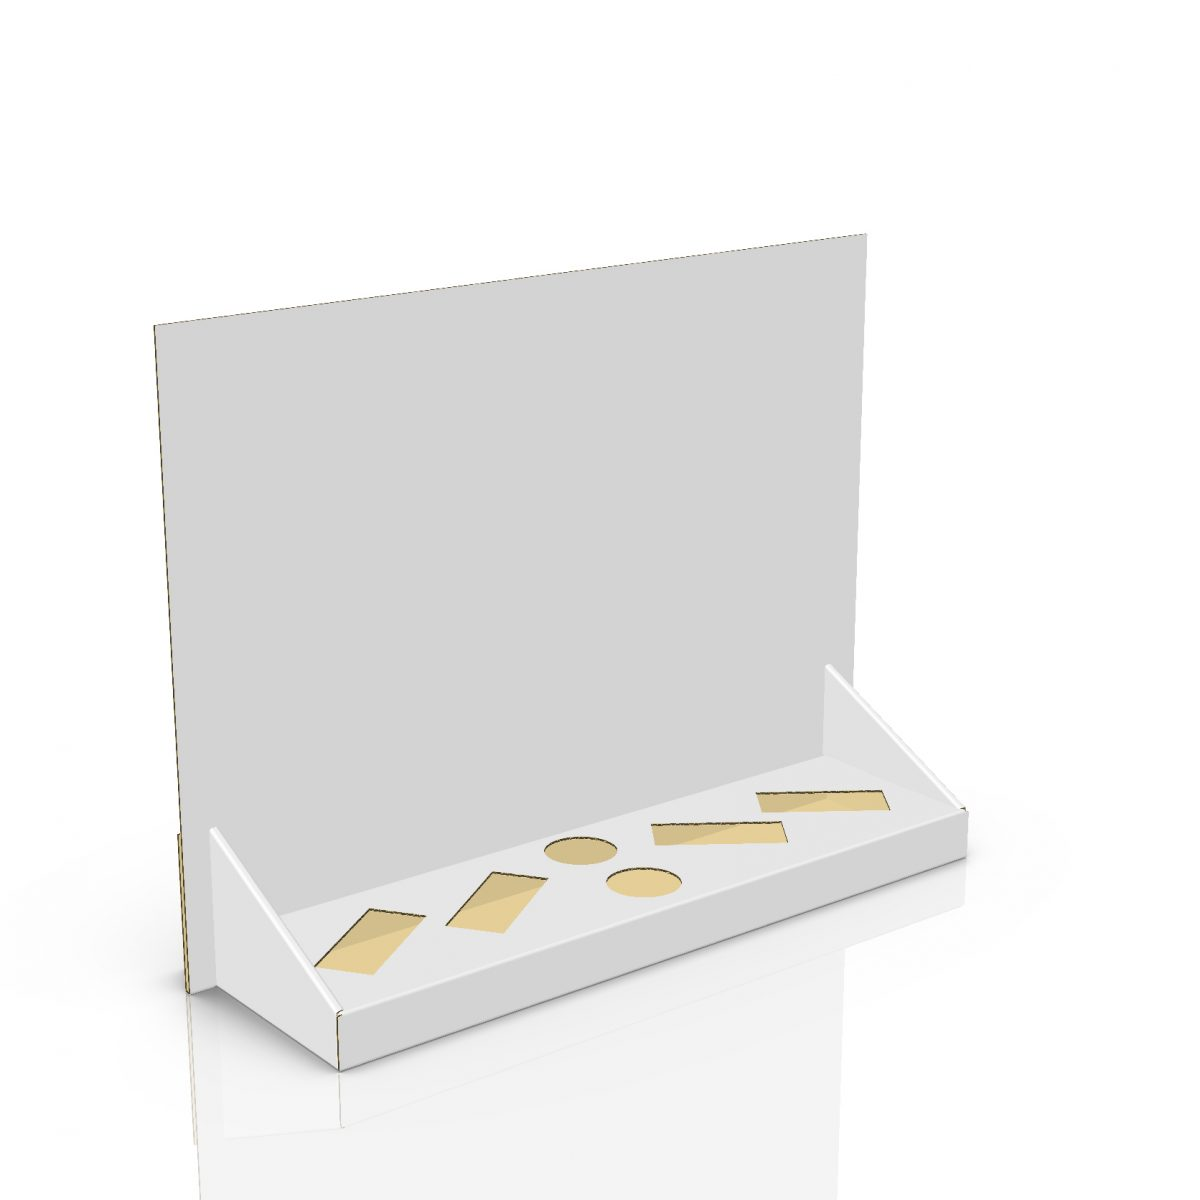 Cardboard counter display with header and 6 cuts to insert products (4 rectangles and 2 circles) - 3d